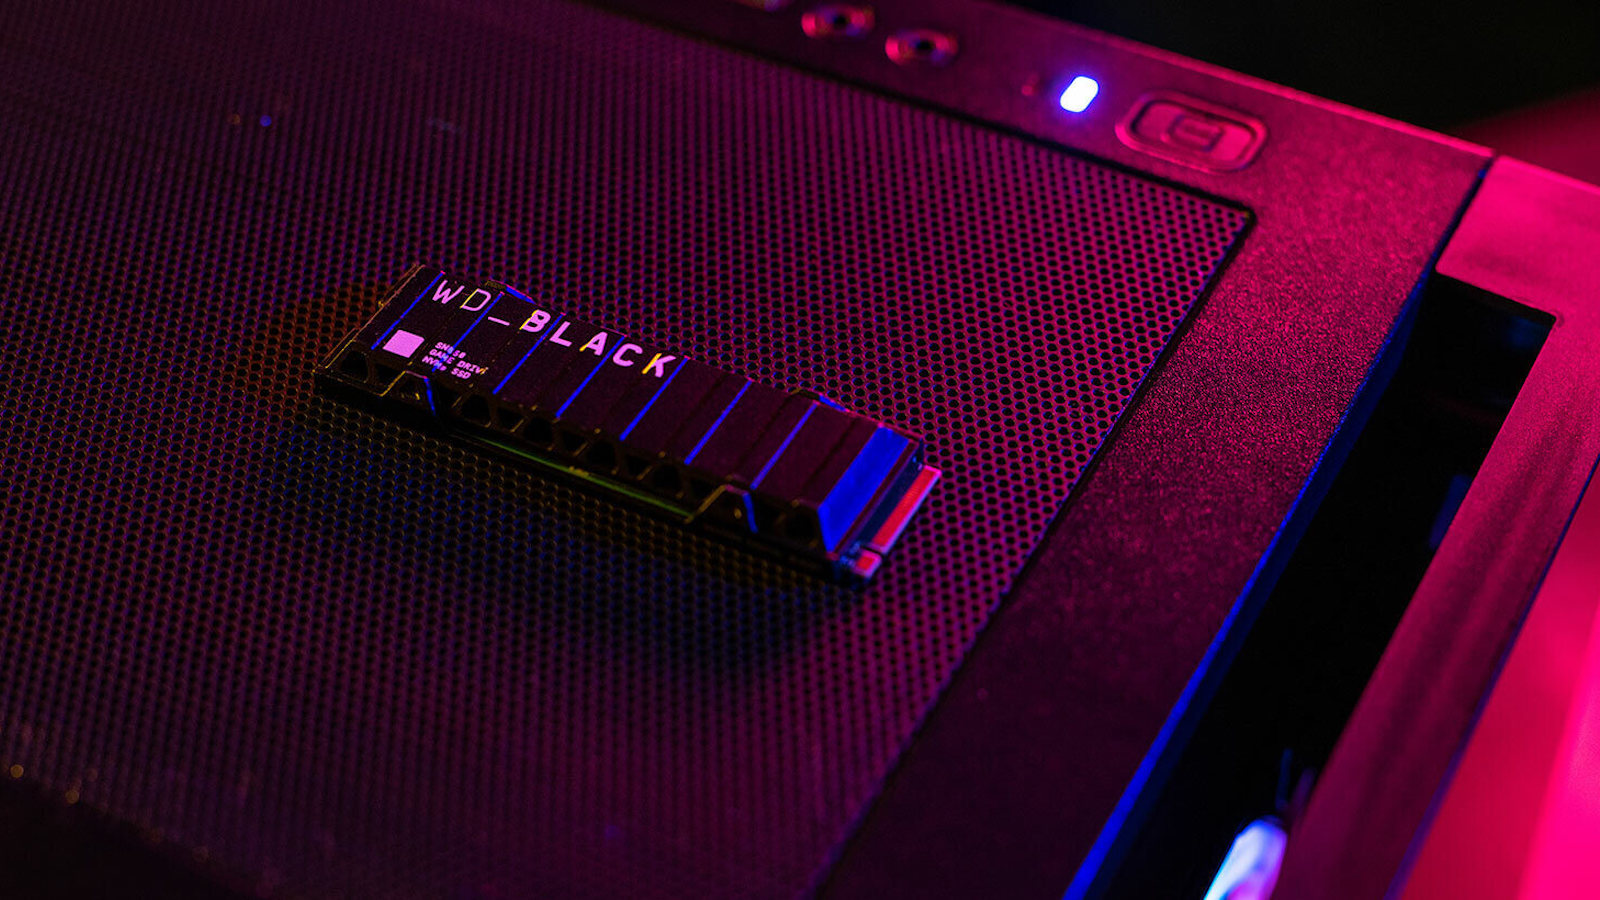 Western Digital WD_BLACK SN850 NVMe SSD allows you to monitor your drive's health